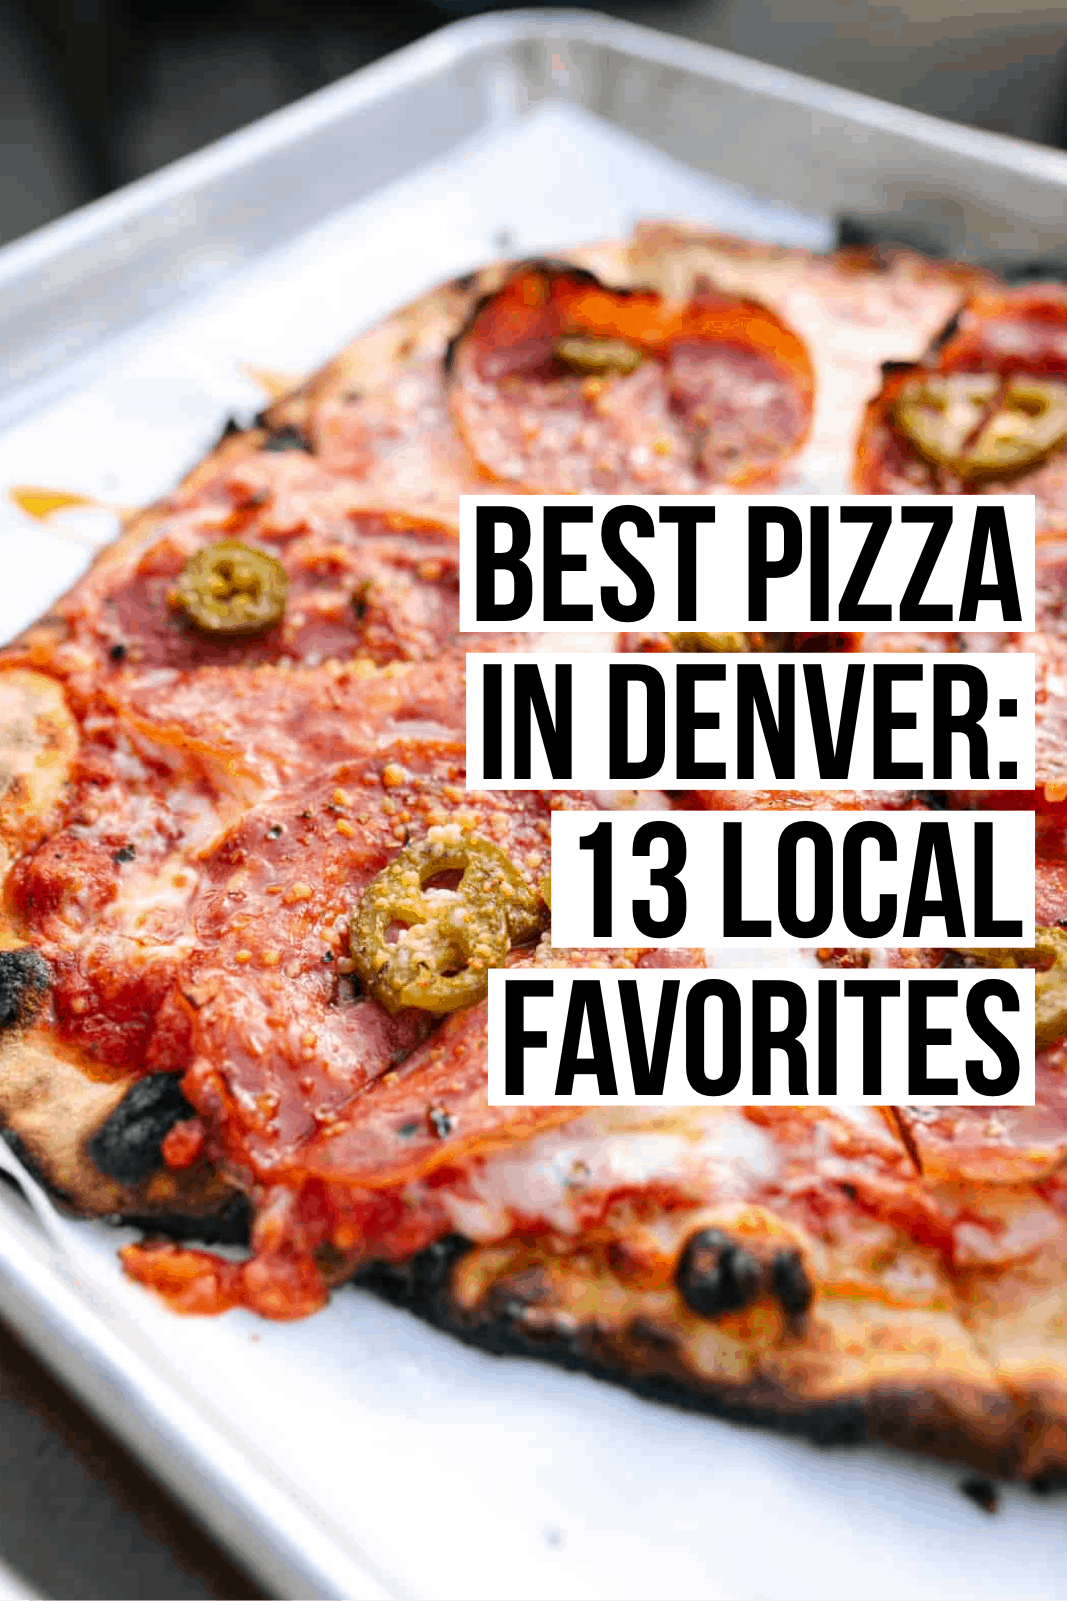 Whether you're looking for thin crust, deep dish, or a vegan slice of pizza we've got you covered in this comprehensive guide to the best pizza in Denver!